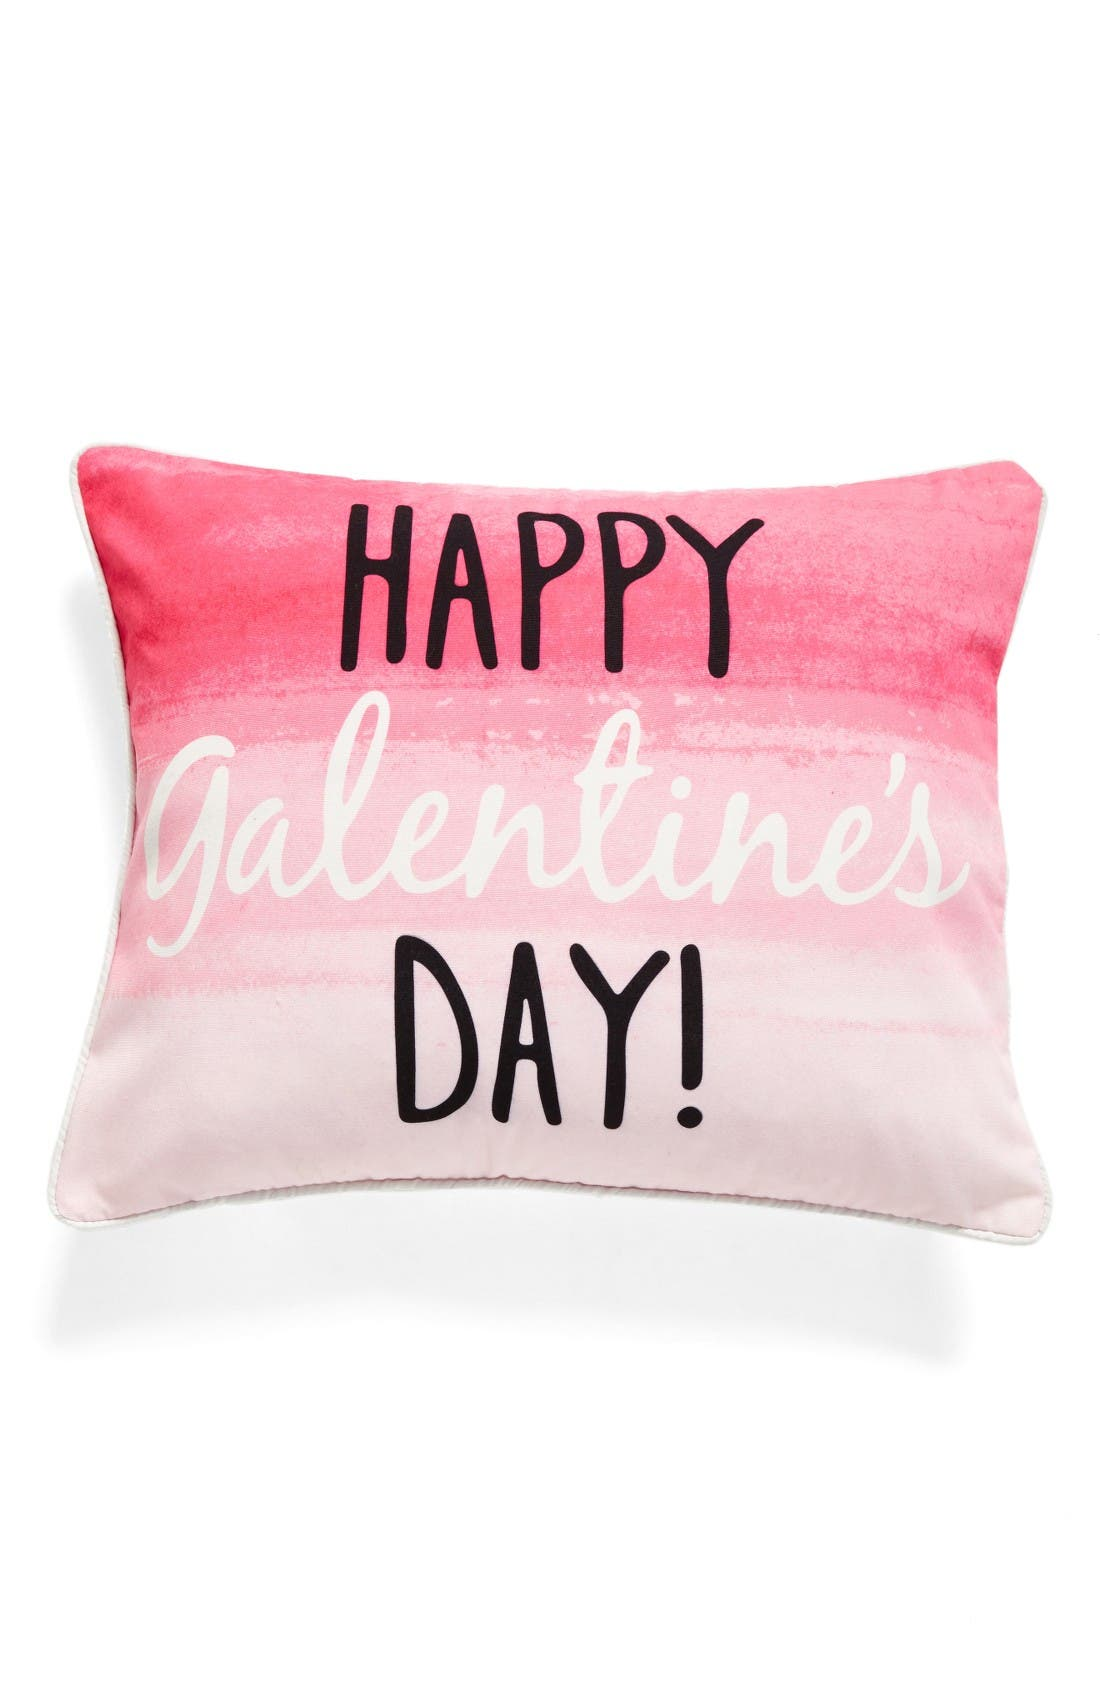 Main Image - Levtex Happy Galentine's Day Pillow